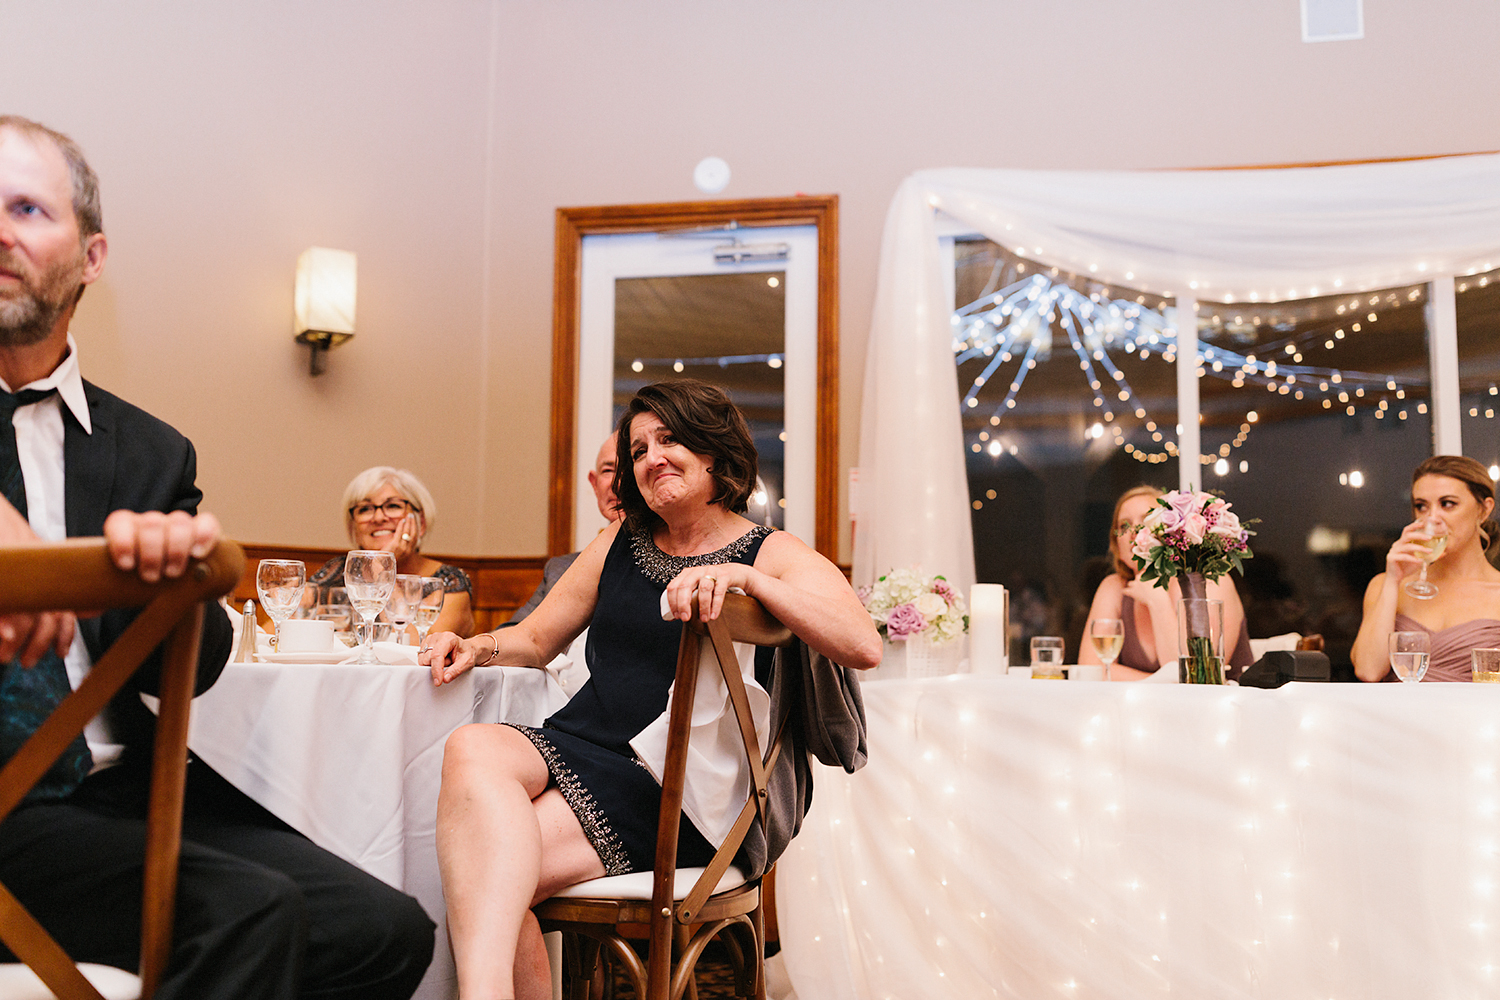 bride-and-groom-speech-mom-crying-during-reception-At-Eganridge-Resort-Venue-Muskoka-Ontario-Wedding-Photography-by-Ryanne-Hollies-Photography-Toronto-Documentary-Wedding-Photographer.jpg